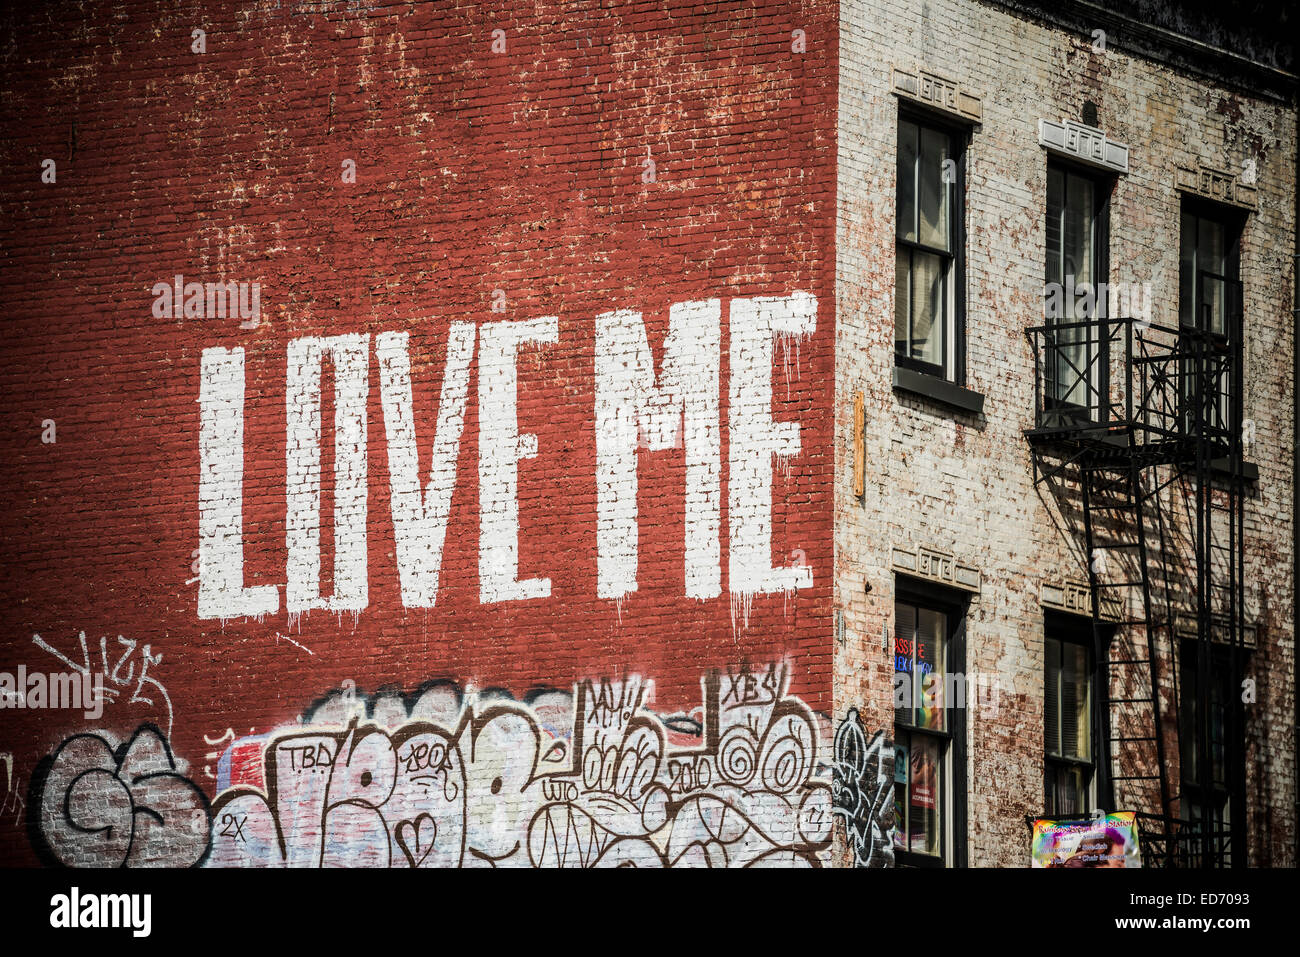 Love New York Wall Graffiti Stock Photos Love New York Wall